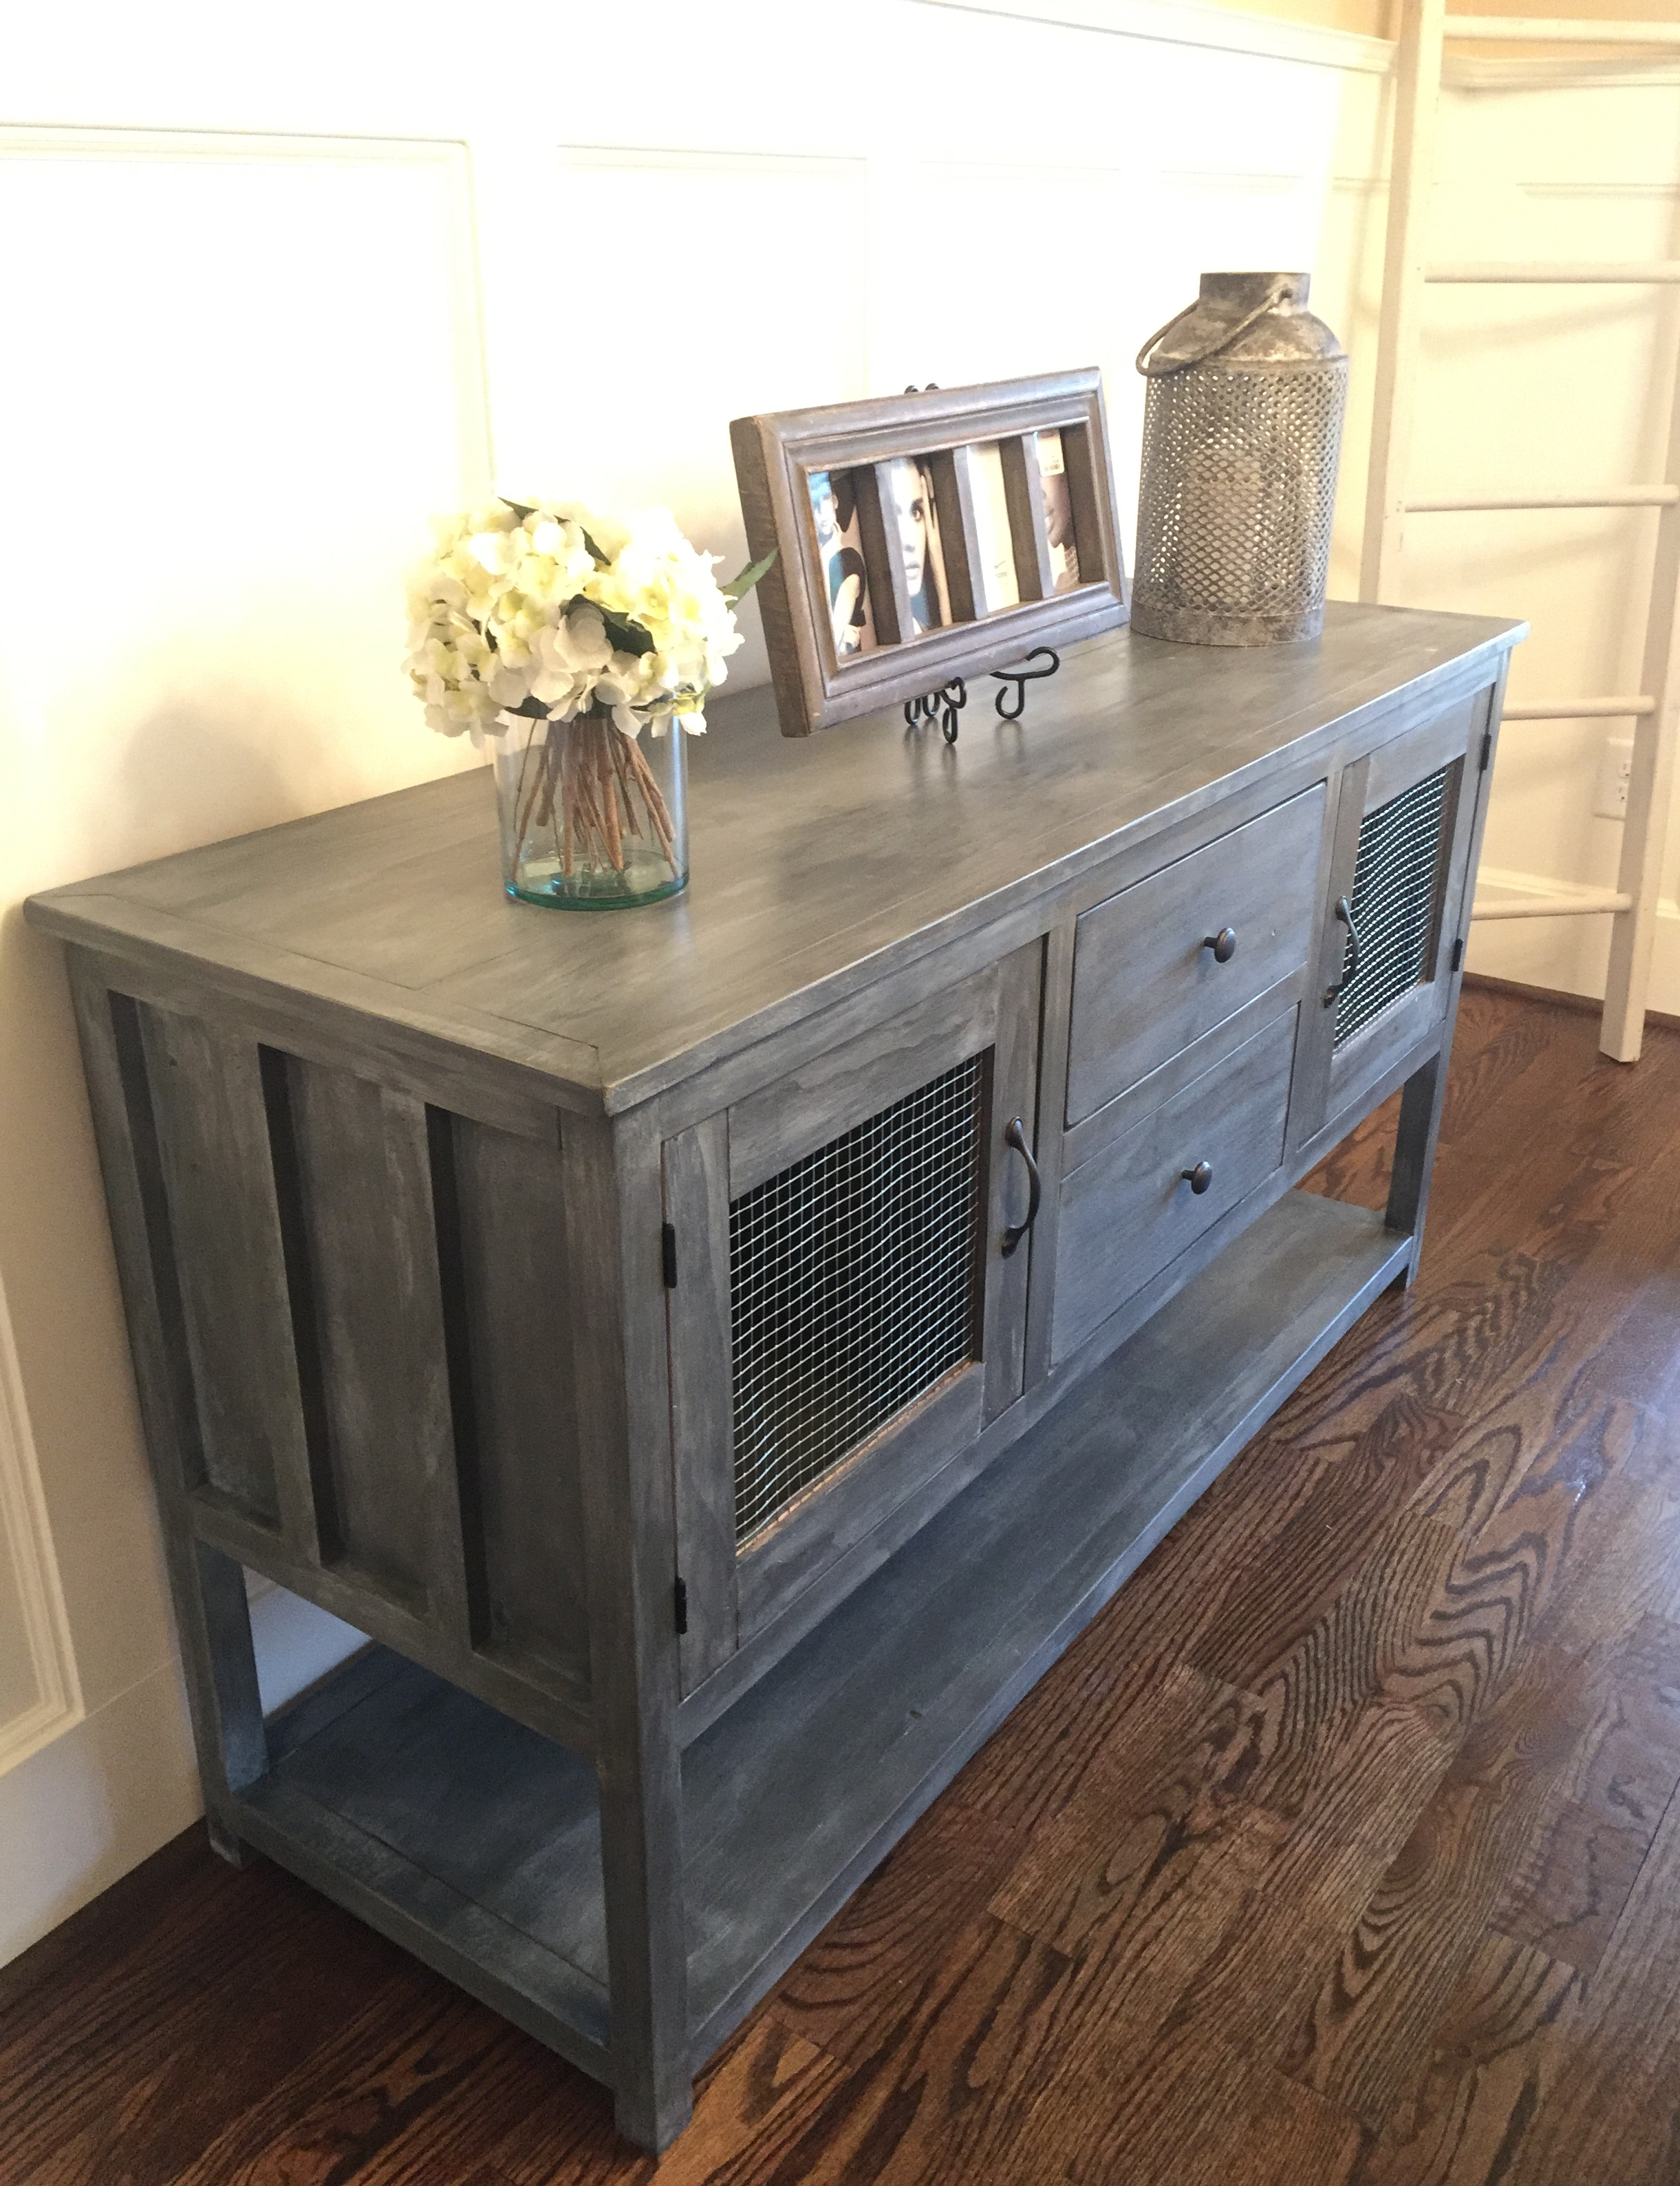 Do It Yourself Divas Diy Kitchen Table Makeover: Farmhouse Buffet From Altered Cabin Dresser